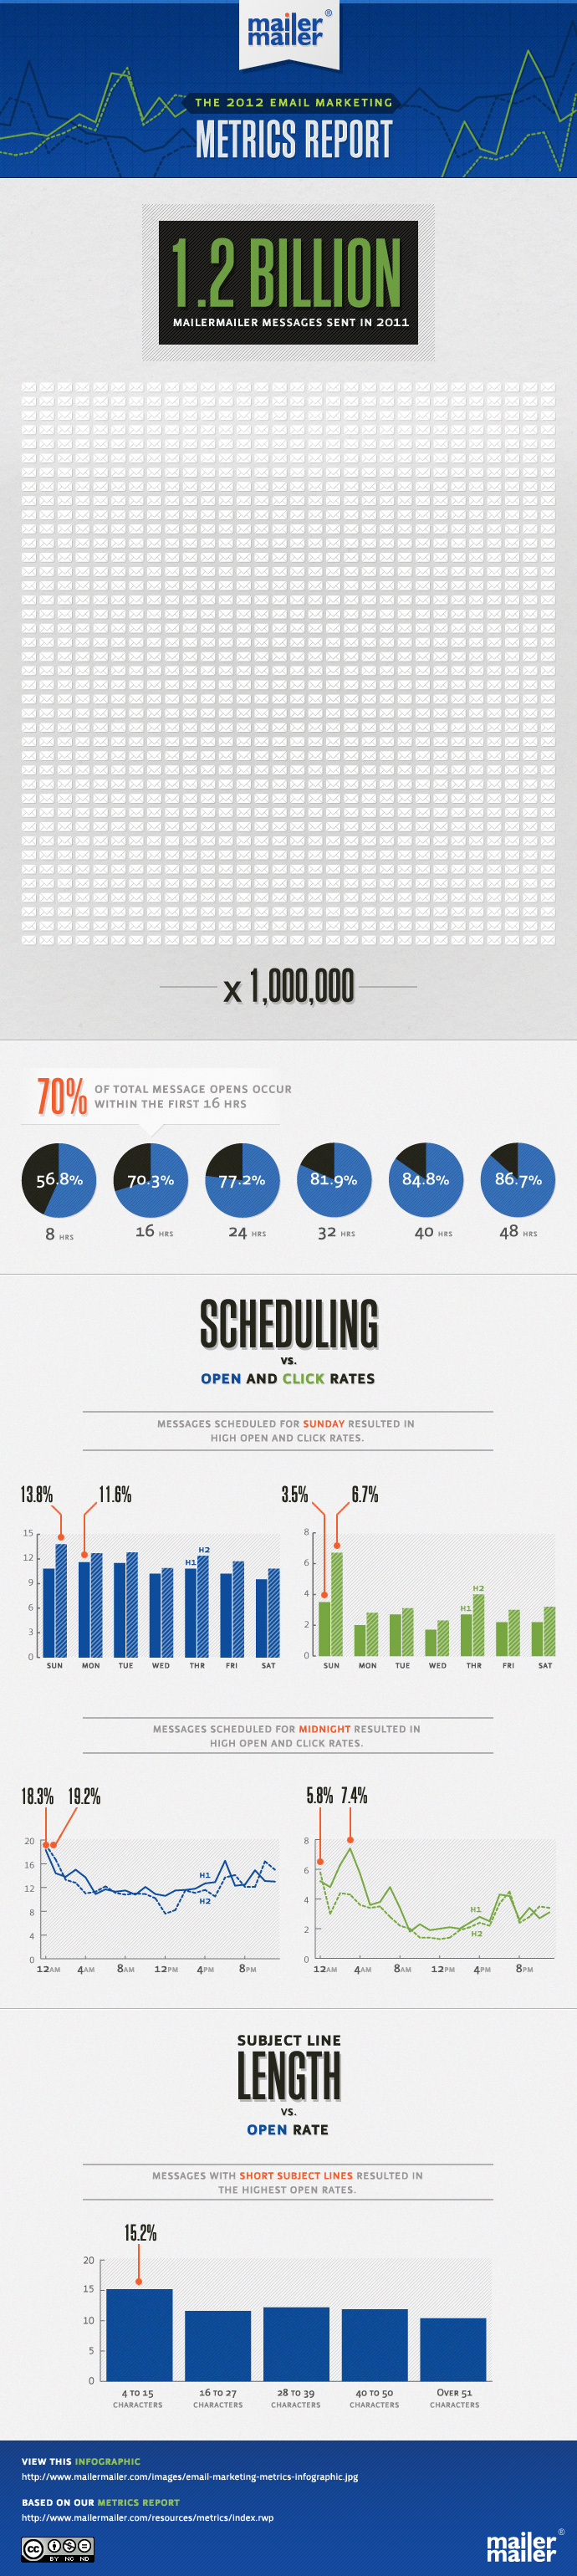 Four to 15 character subject lines have highest open rates | Econsultancy #infographic